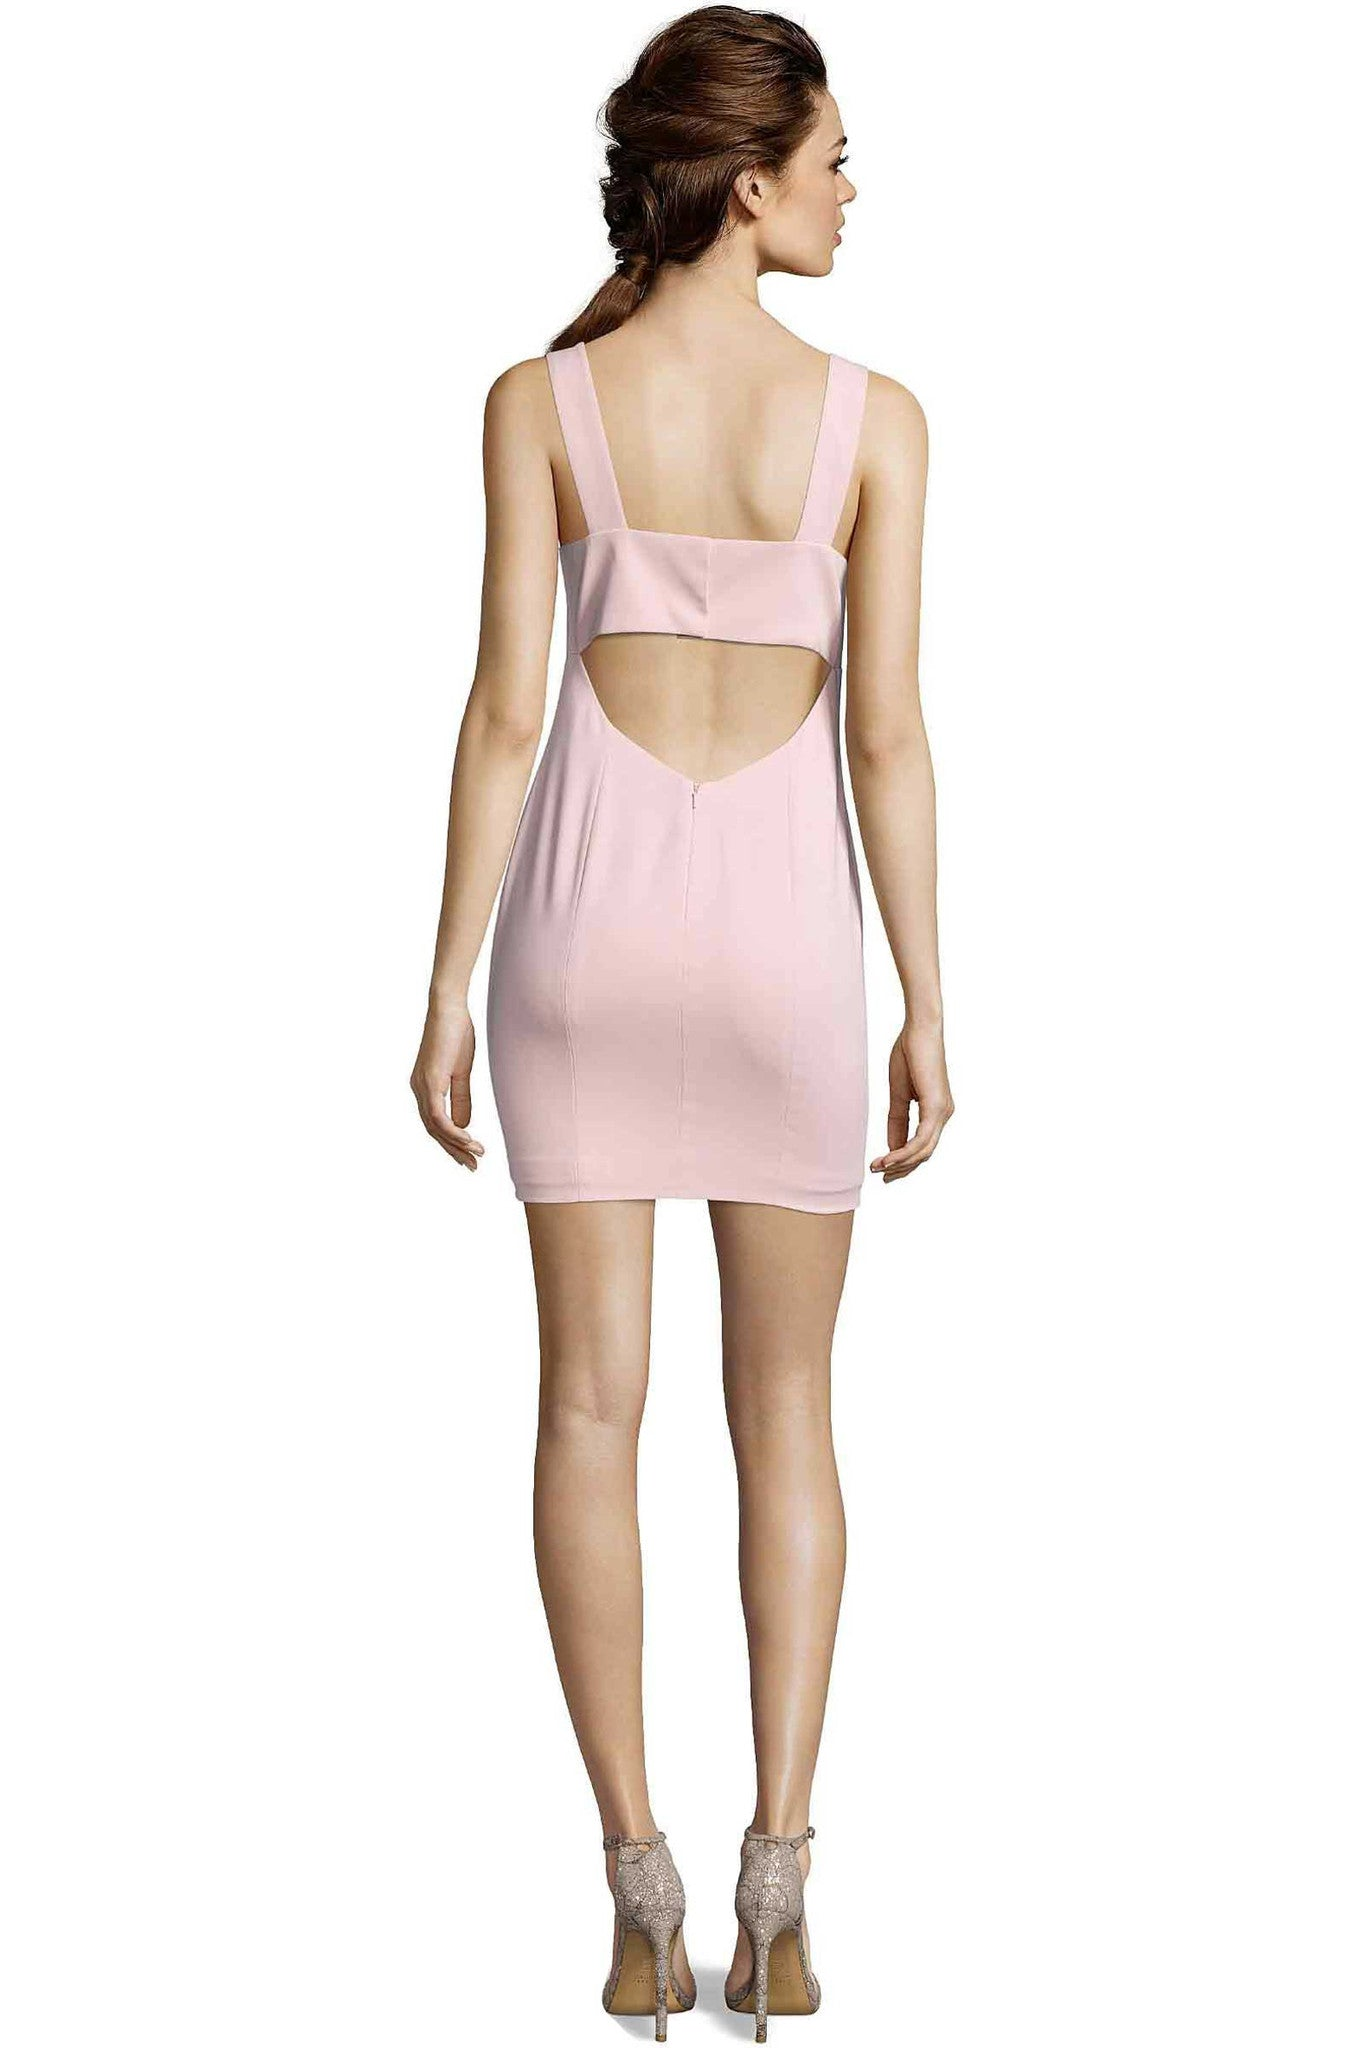 Jay Godfrey Blush Pink Mini Dress - Back View